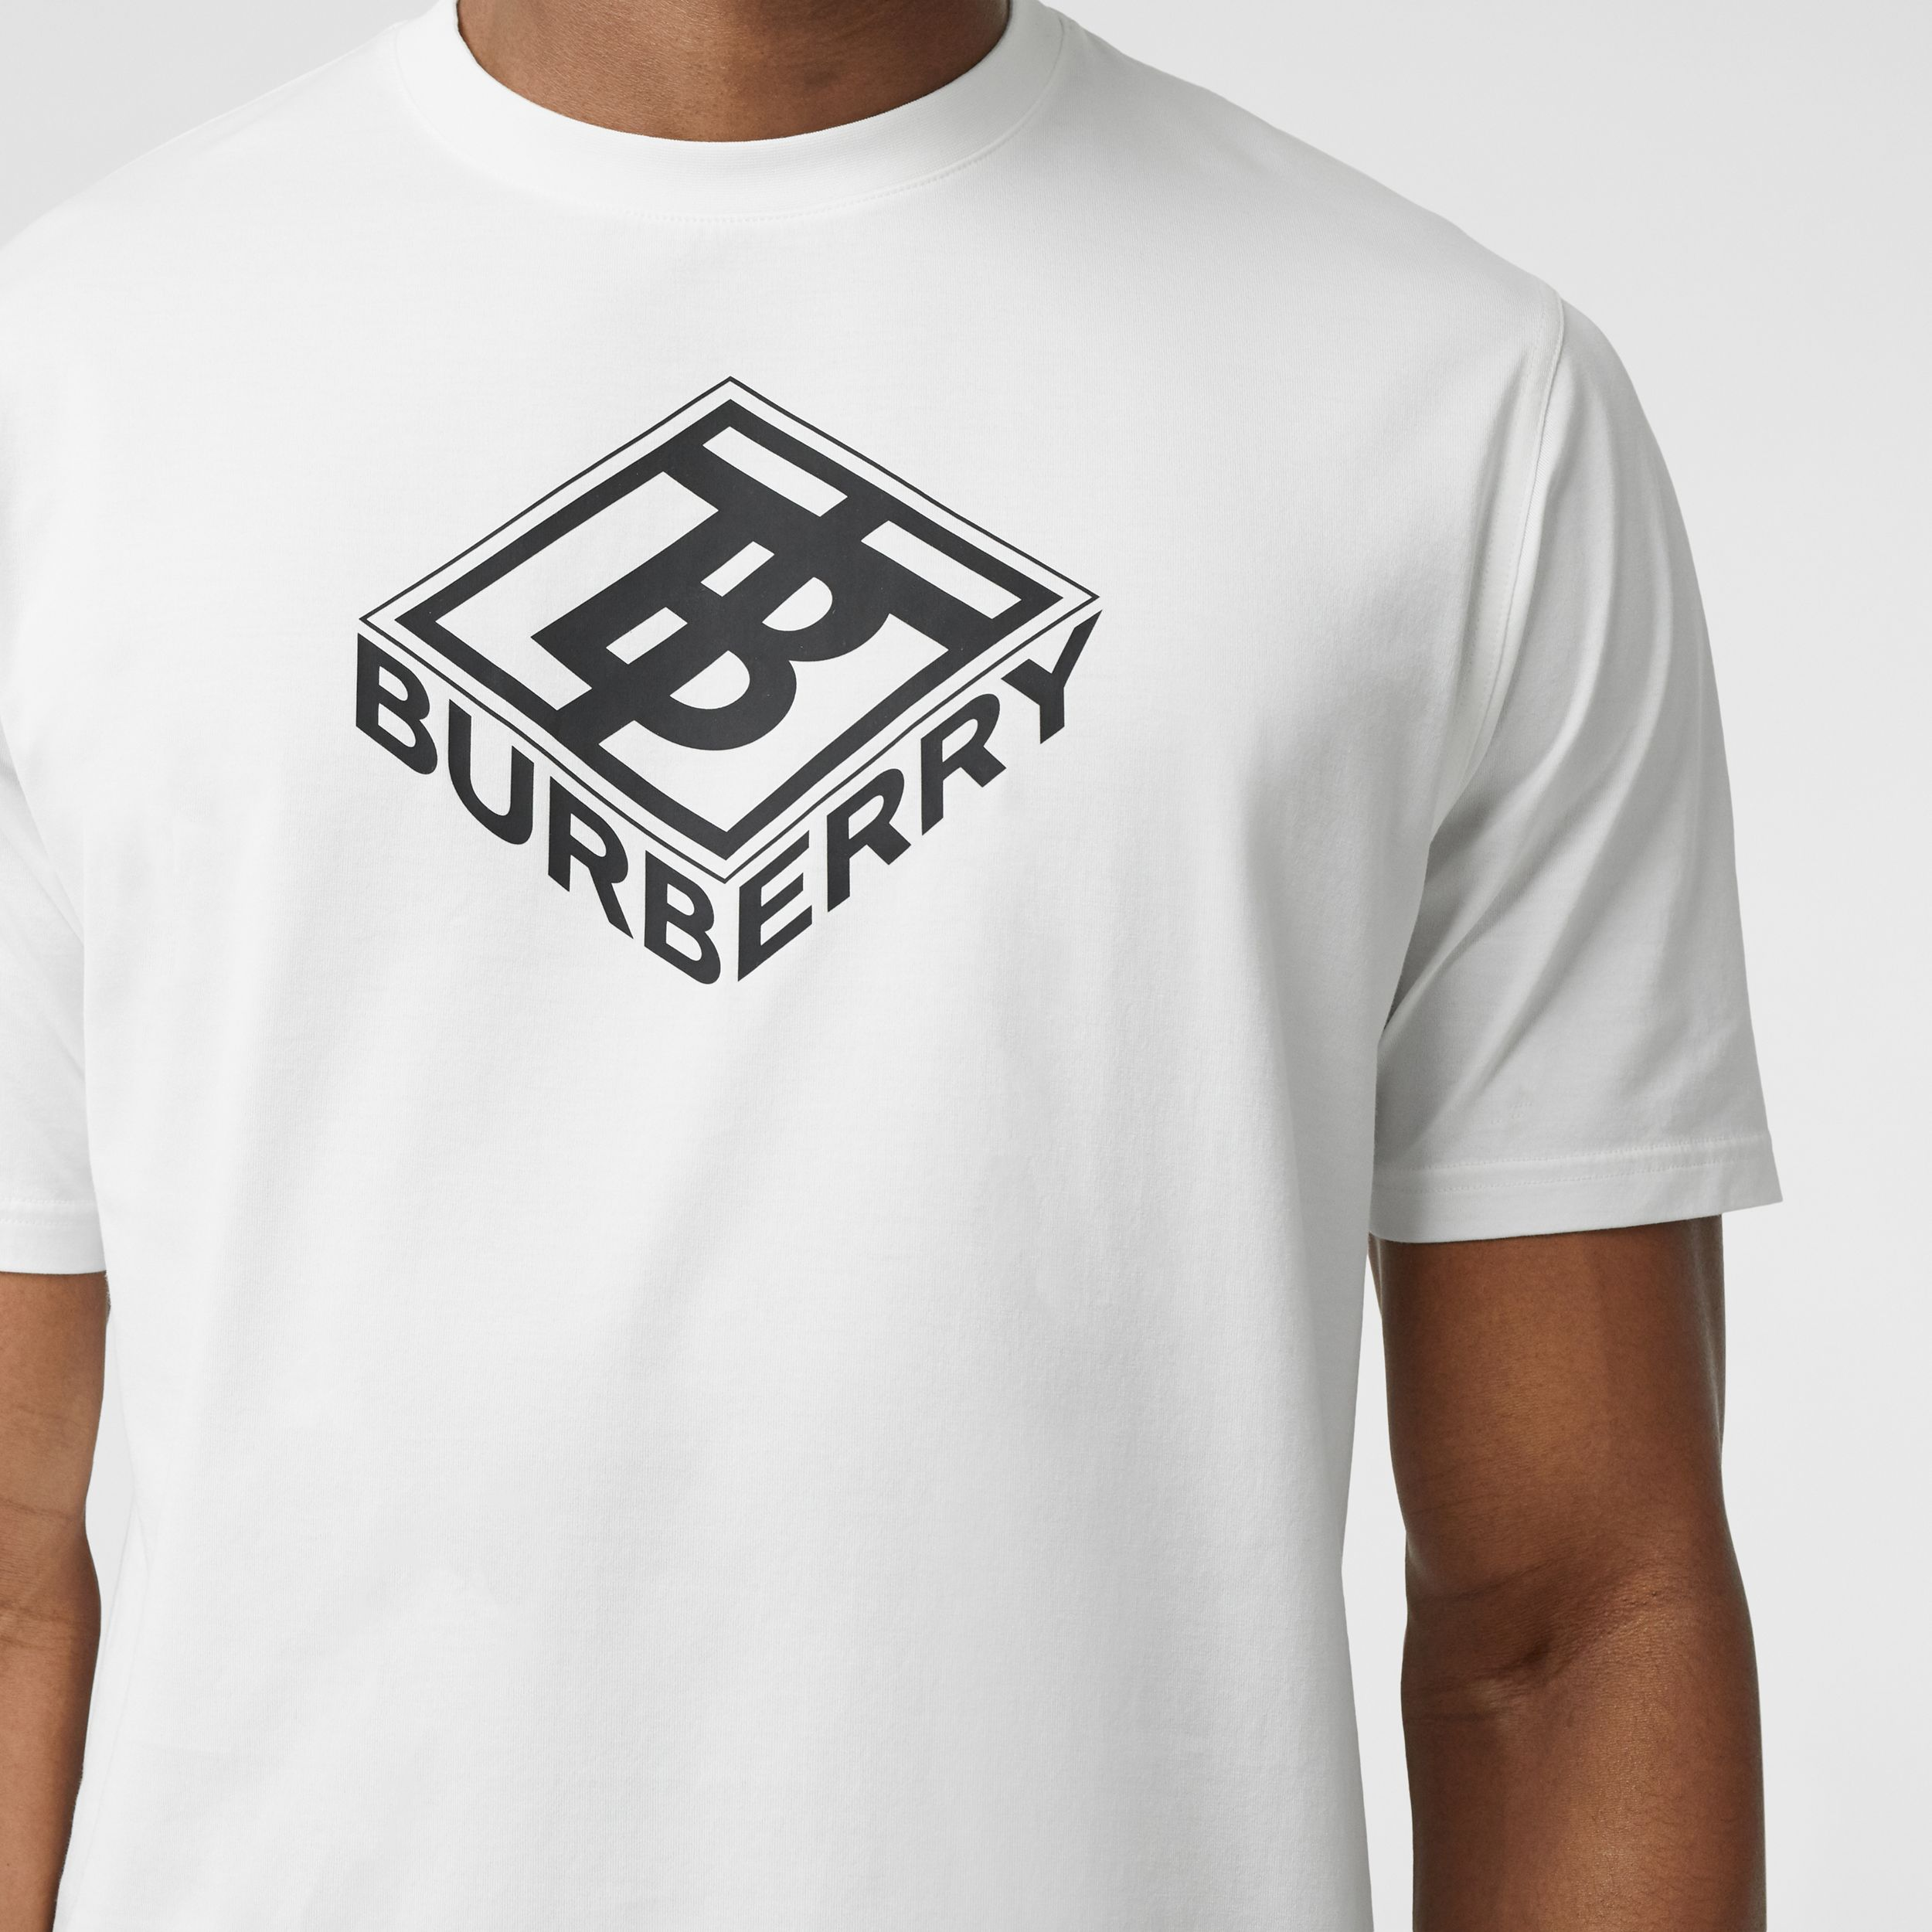 Logo Graphic Cotton T-shirt in White - Men | Burberry United States - 2